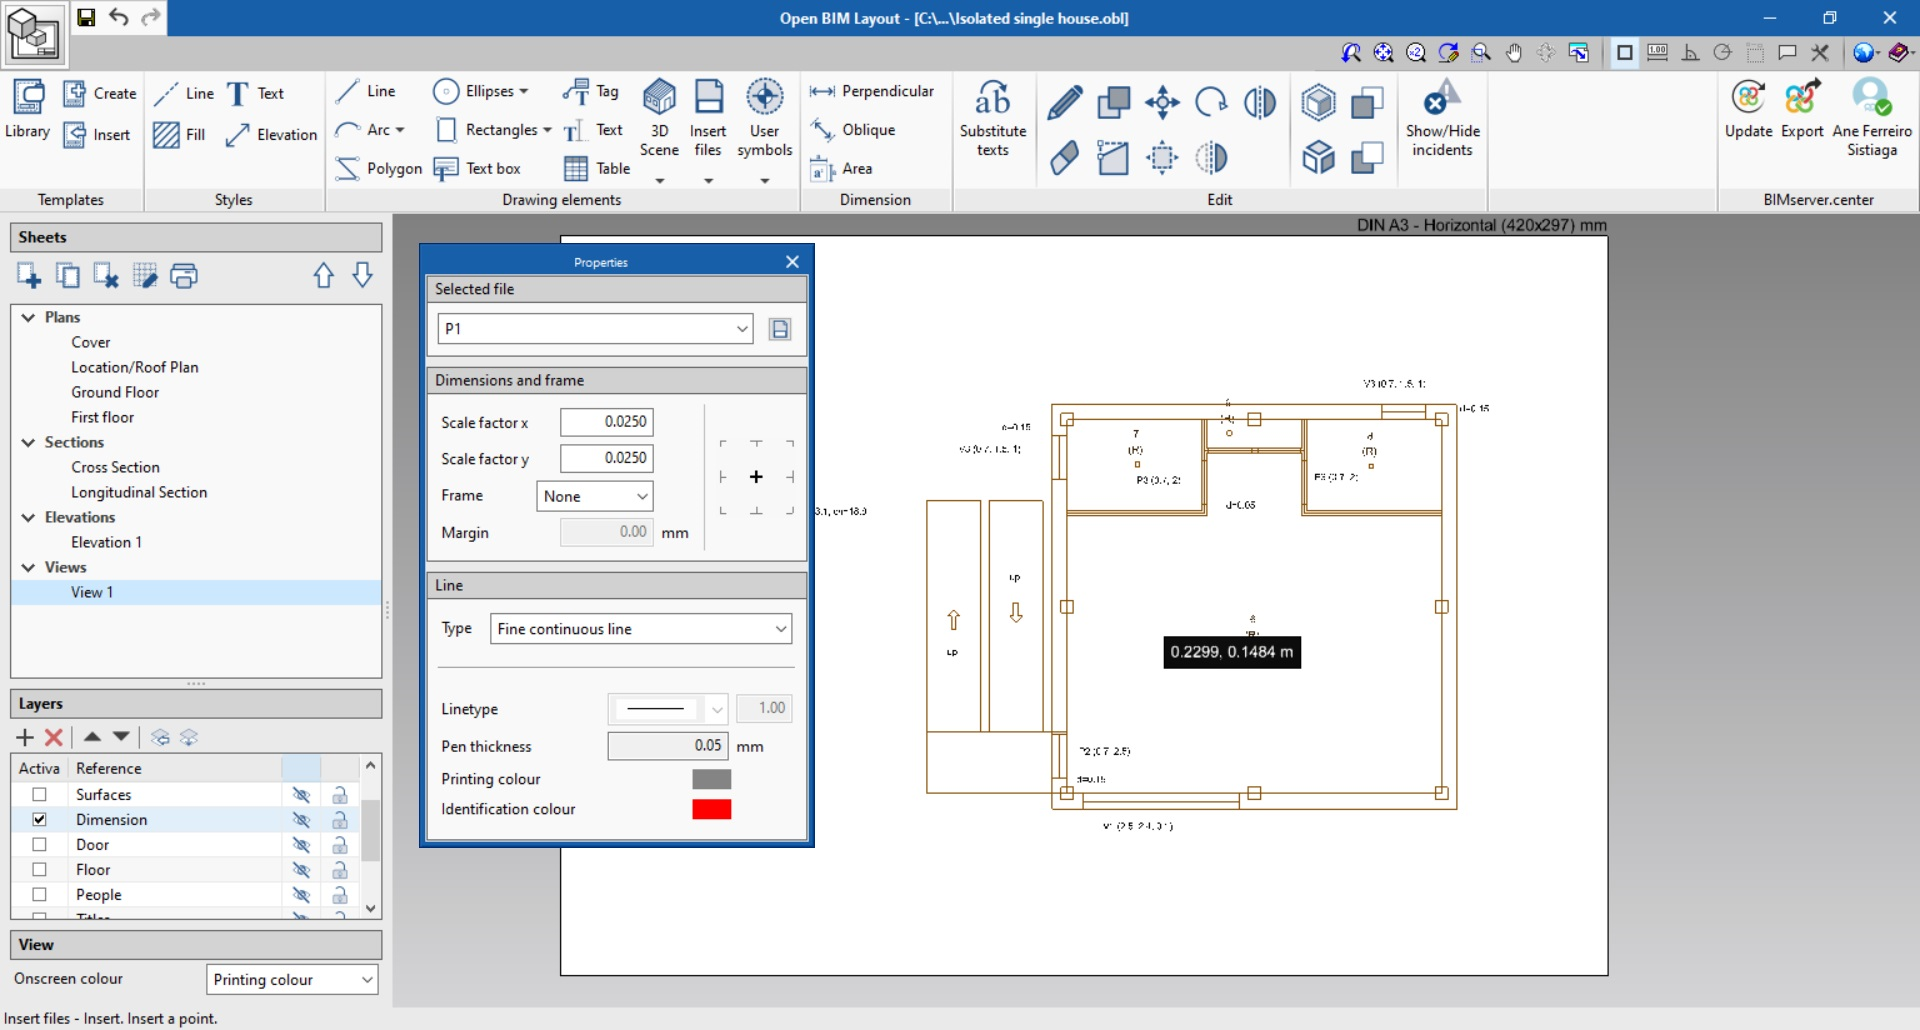 Open BIM Layout. How to insert files